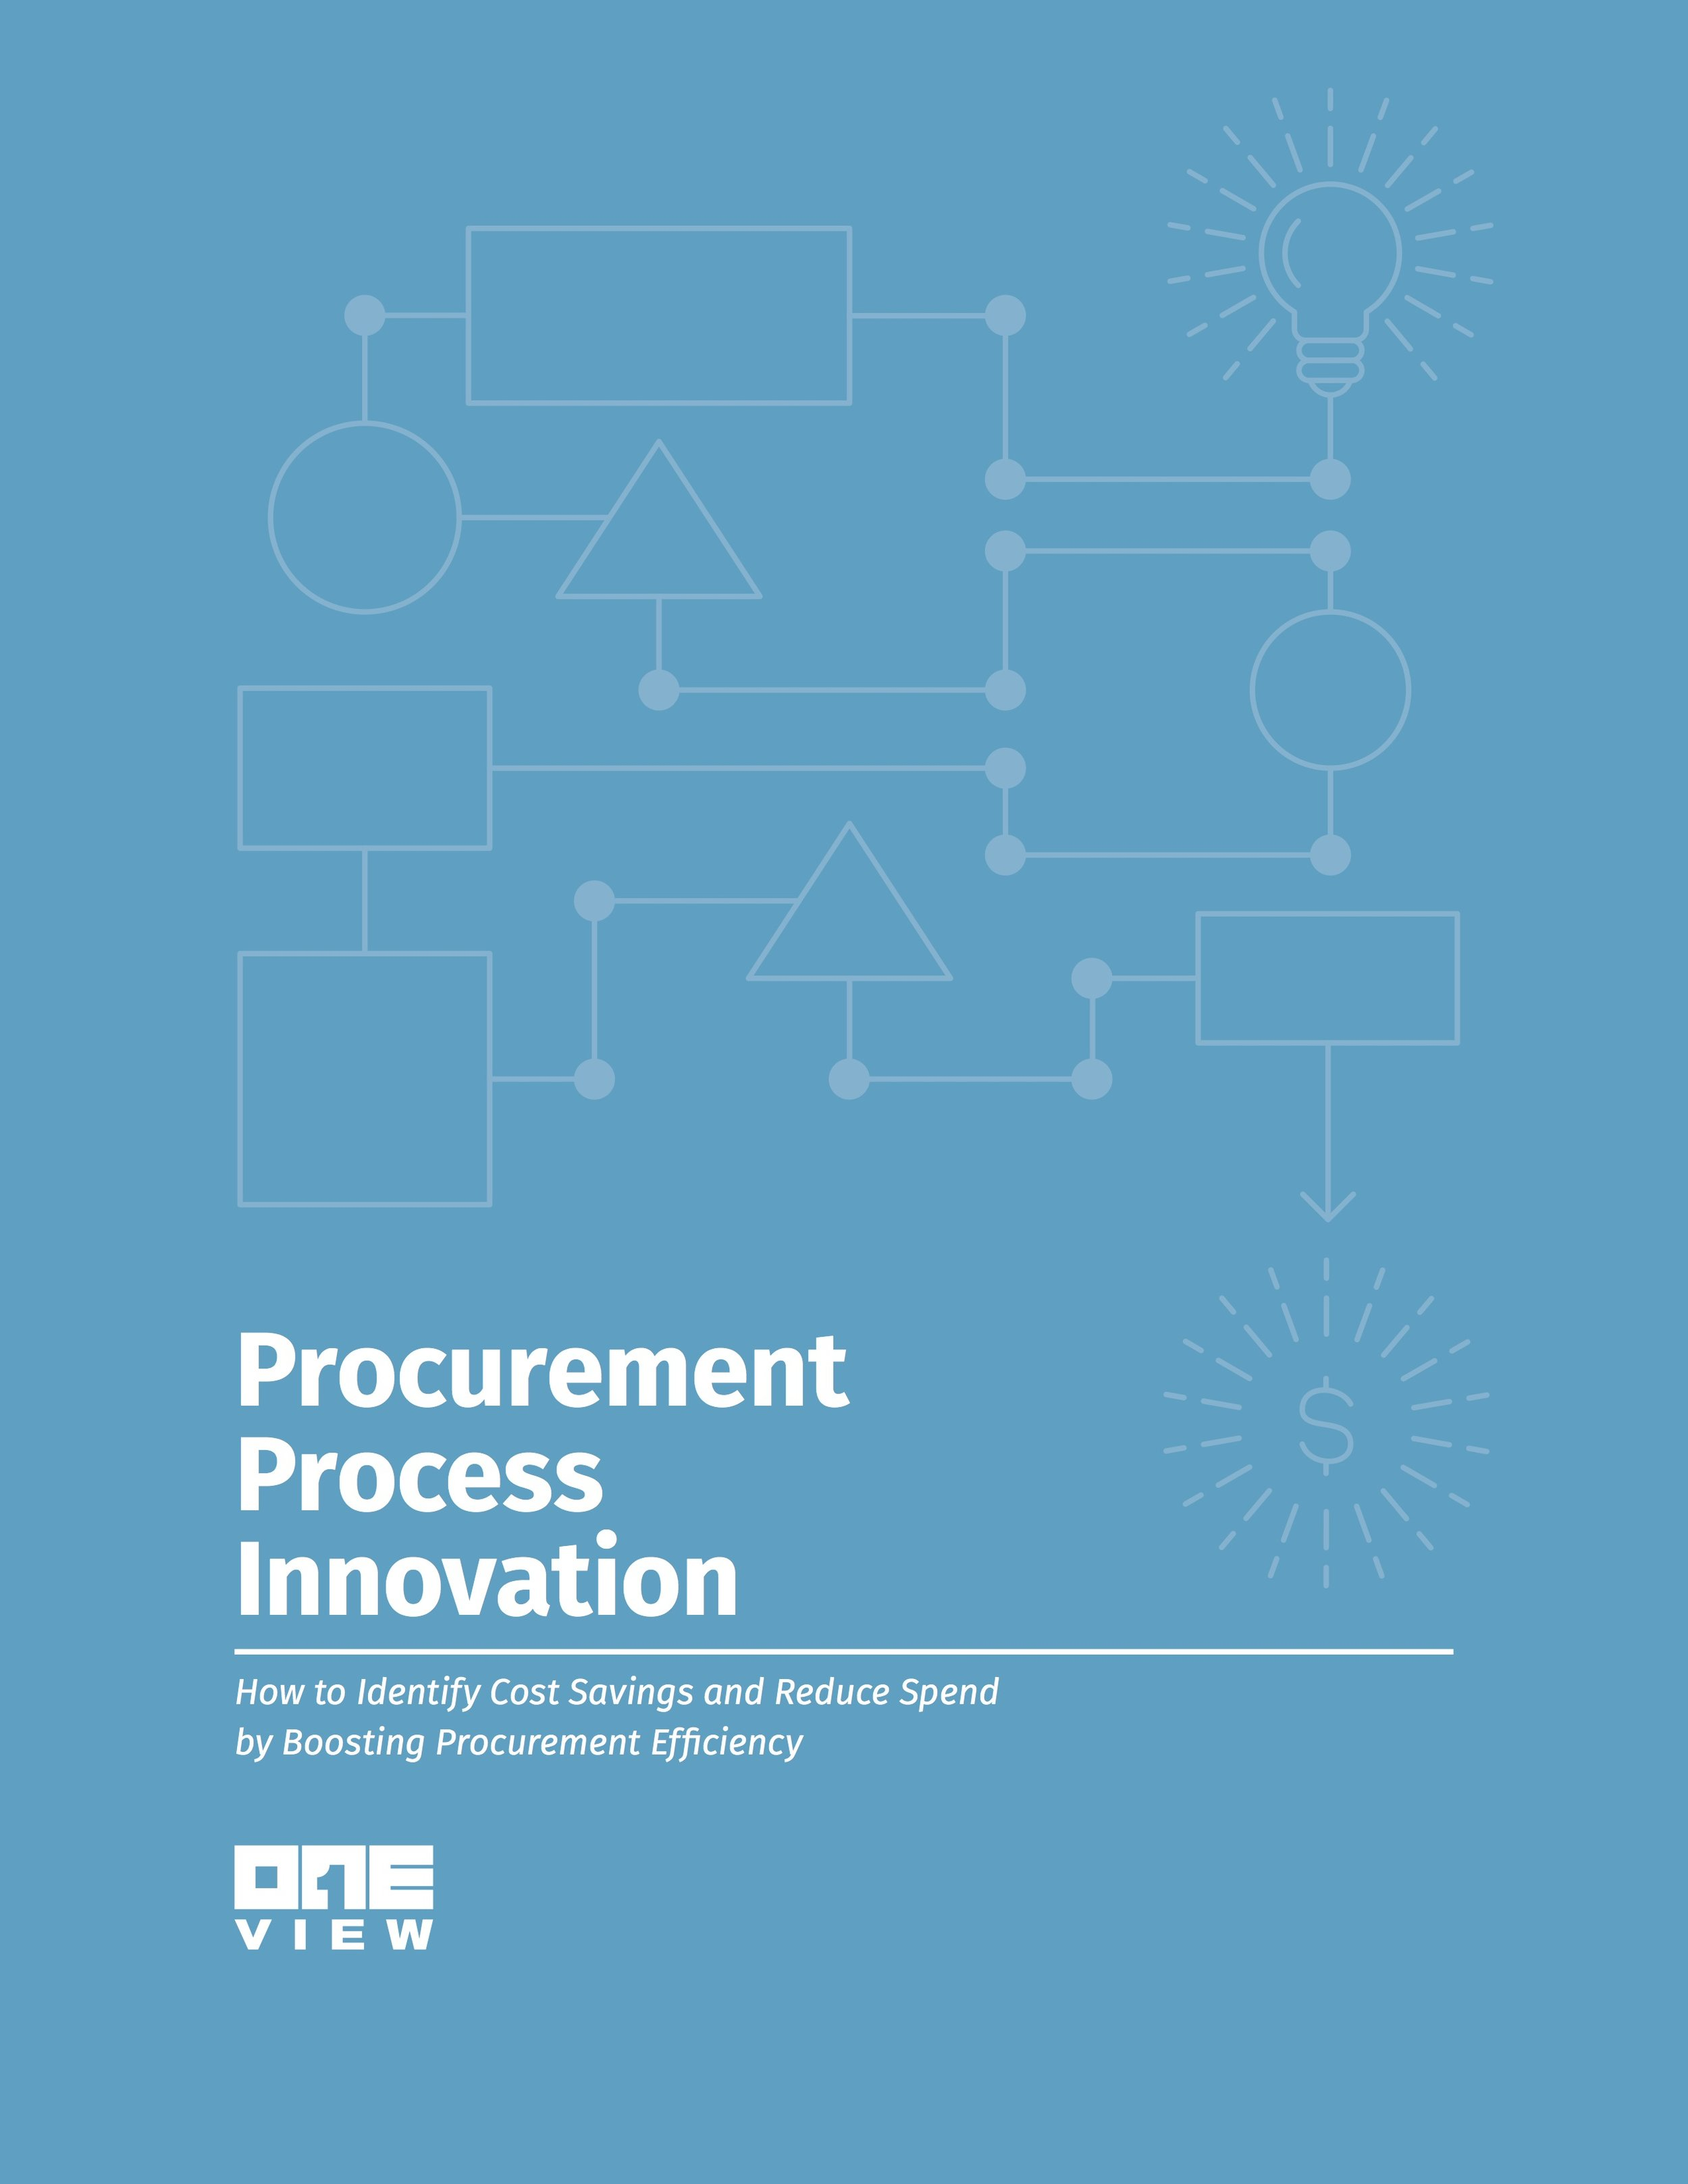 Procurement Process Innovation: How to Identify Savings & Reduce Spend - Discover a step by step process to realizing cost savings and improving efficiency, without going through a Procurement transformation.